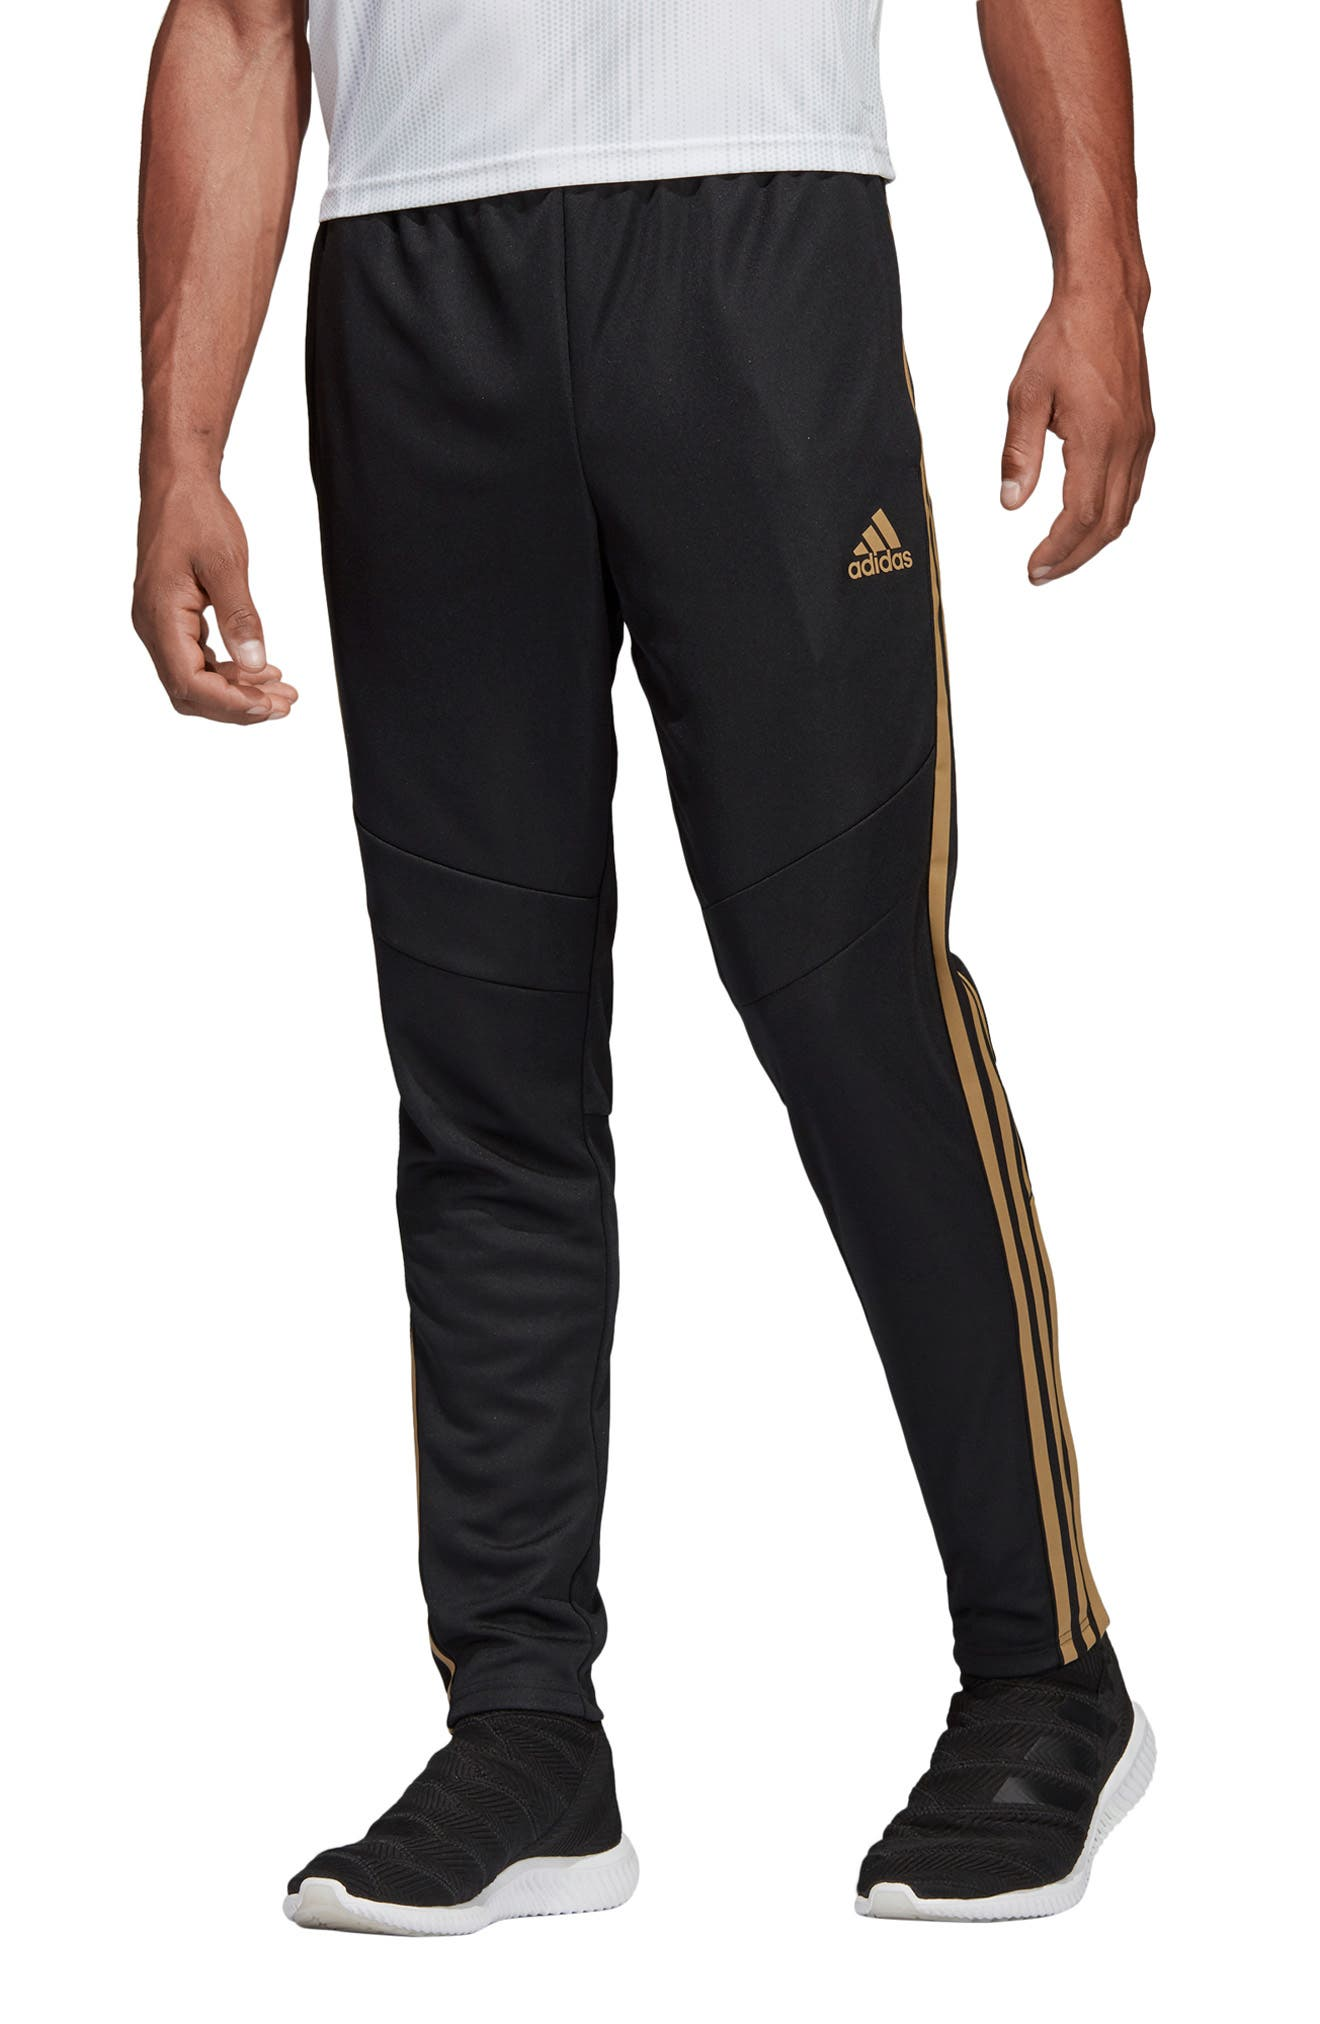 ADIDAS Tiro 19 Training Pants, Main, color, BLACK/ GOLD